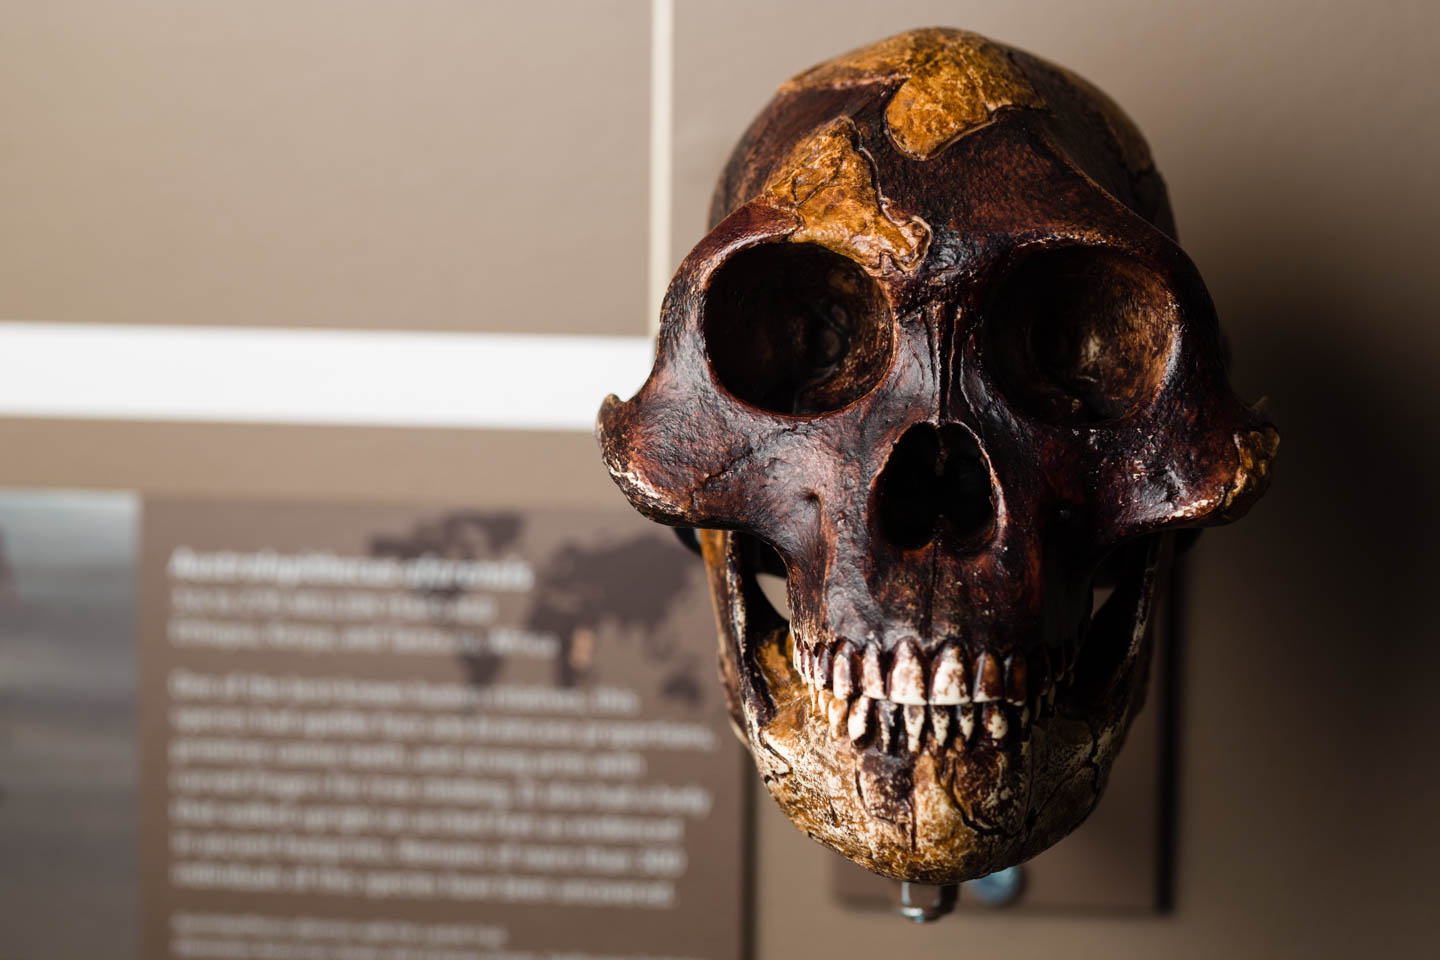 Ancient humanoid skull at the Natural History Museum